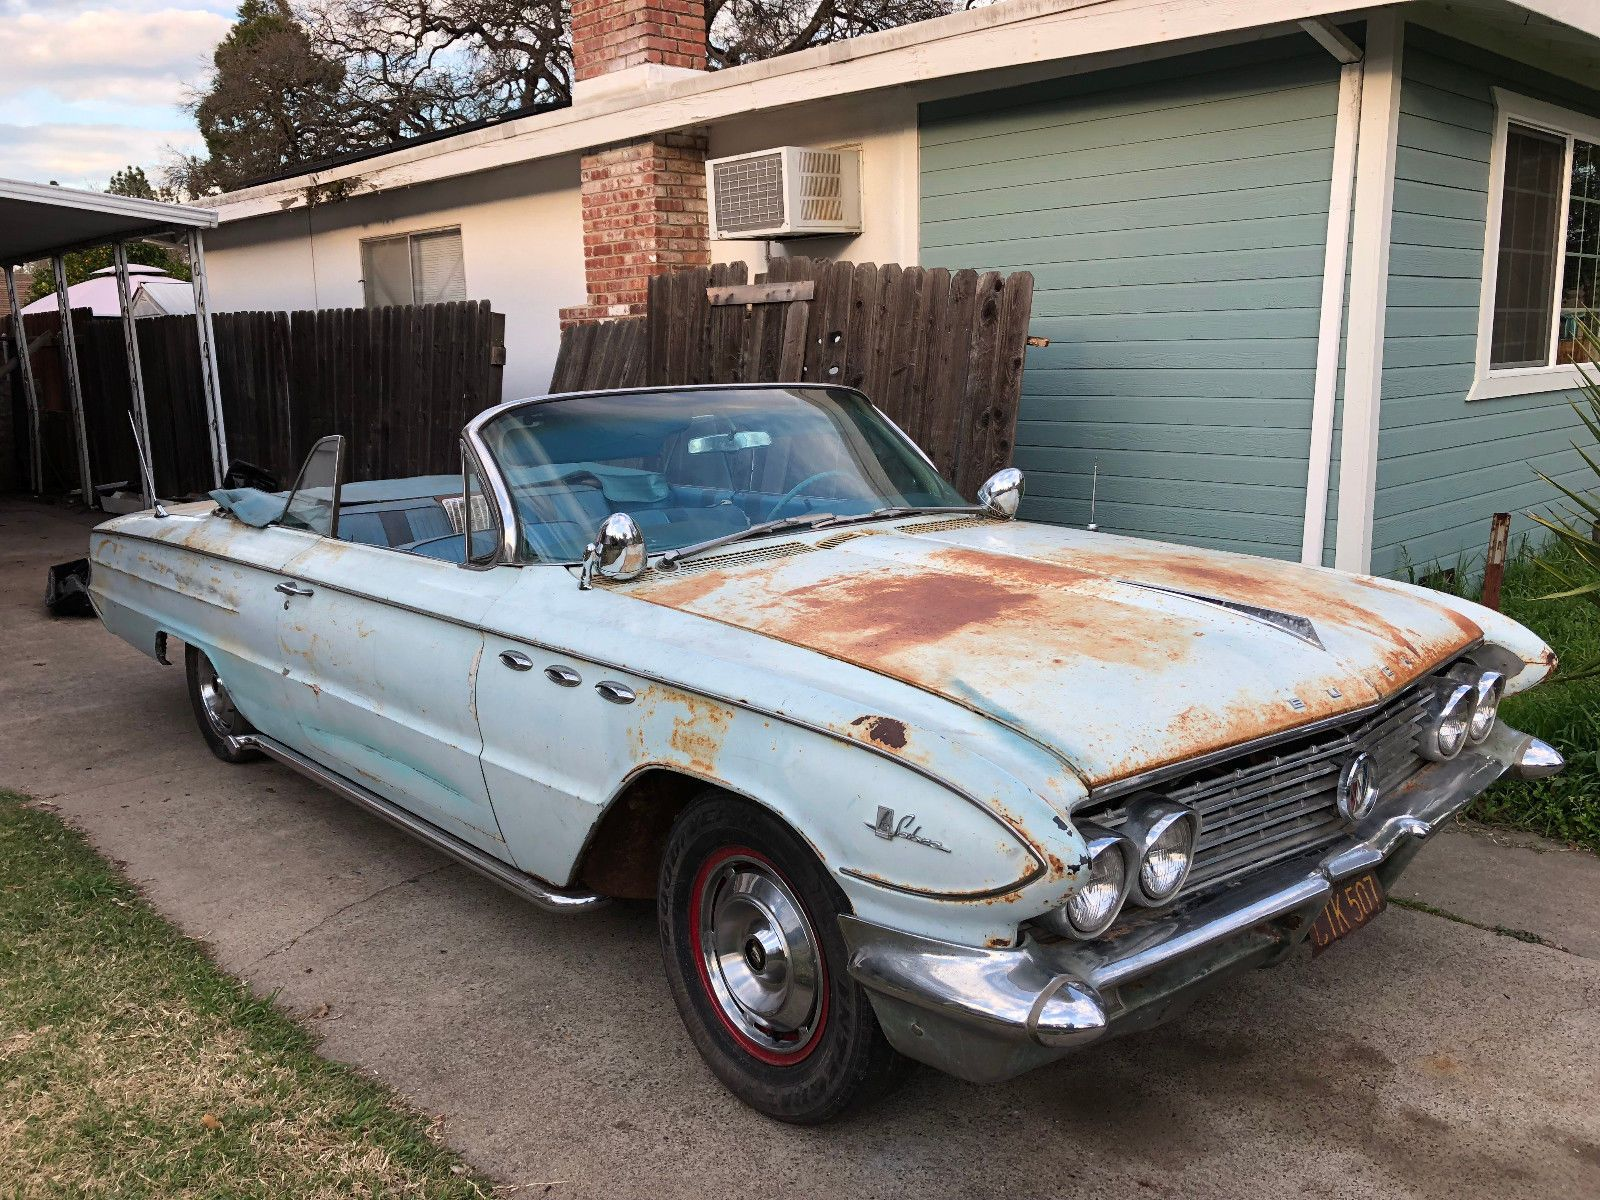 extra parts 1961 Buick LeSabre convertible project | Project cars ...